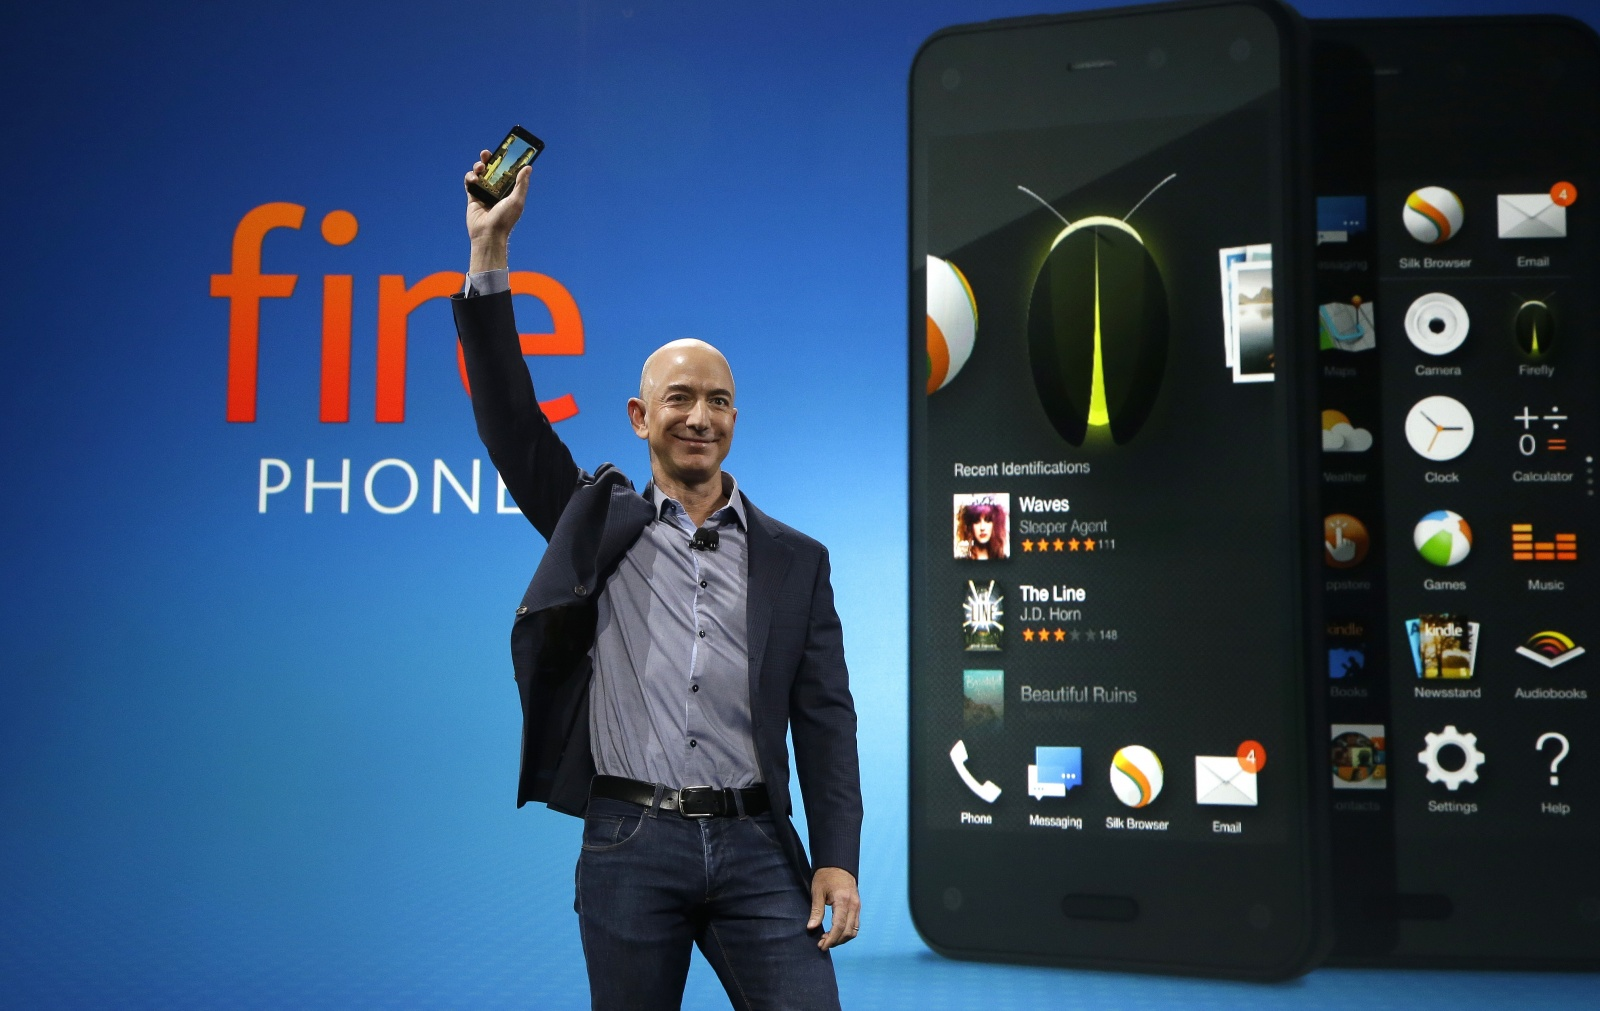 amazon-shrinks-hardware-division-ditches-projects-following-fire-phone-flop-image-cultofandroidcomwp-contentuploads20140821c49917c77195fe9b31118f0d3299ea-jpg